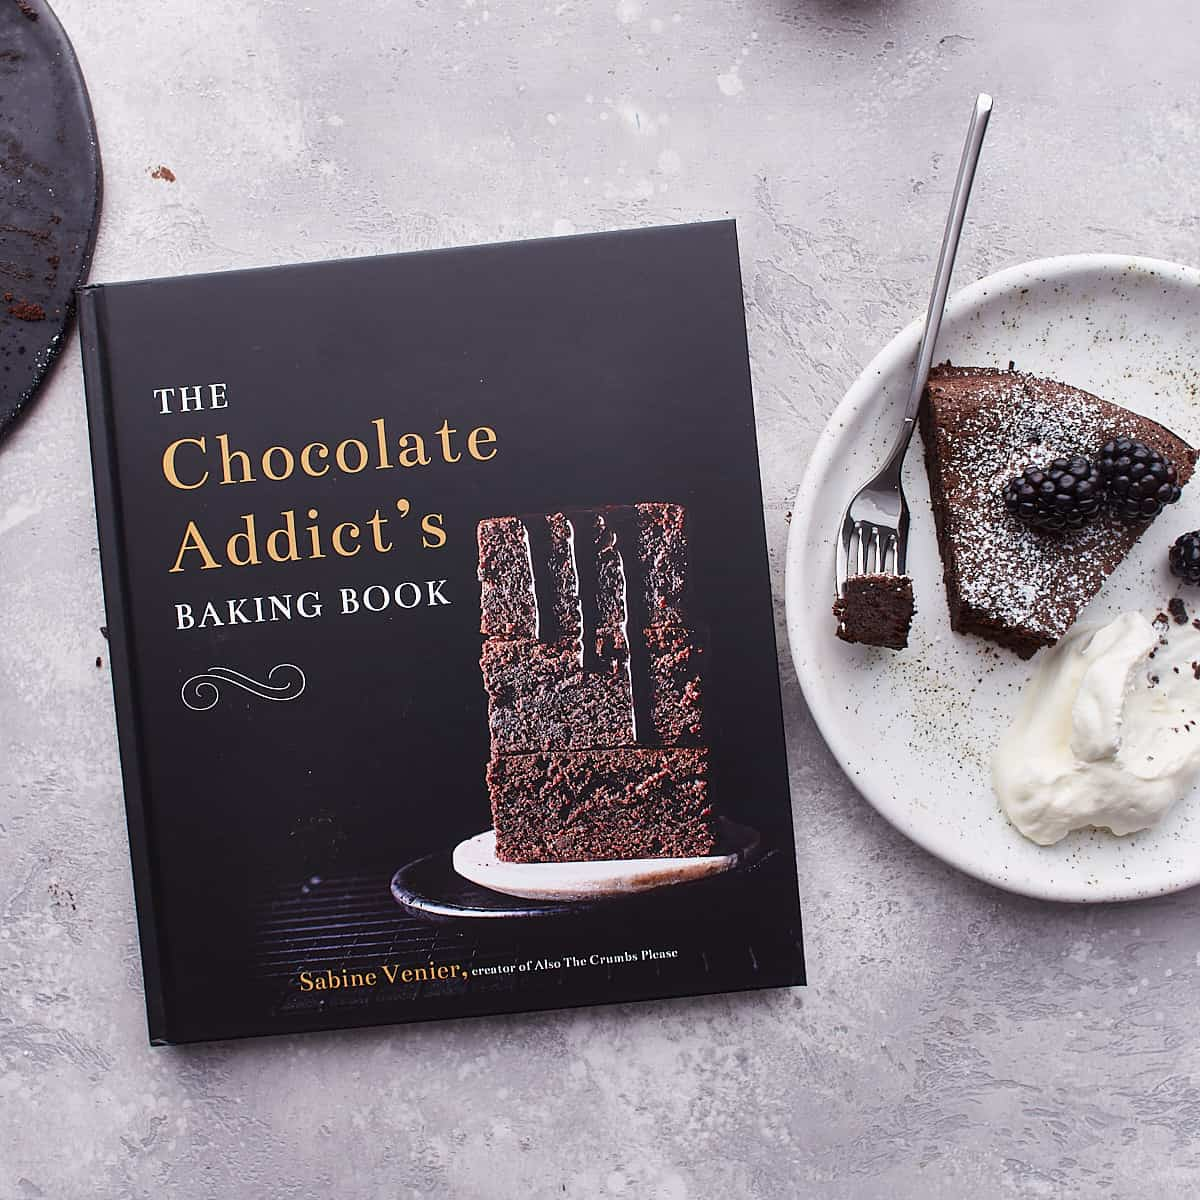 Photo of a chocolate cookbook with a plated slice of cake next to it